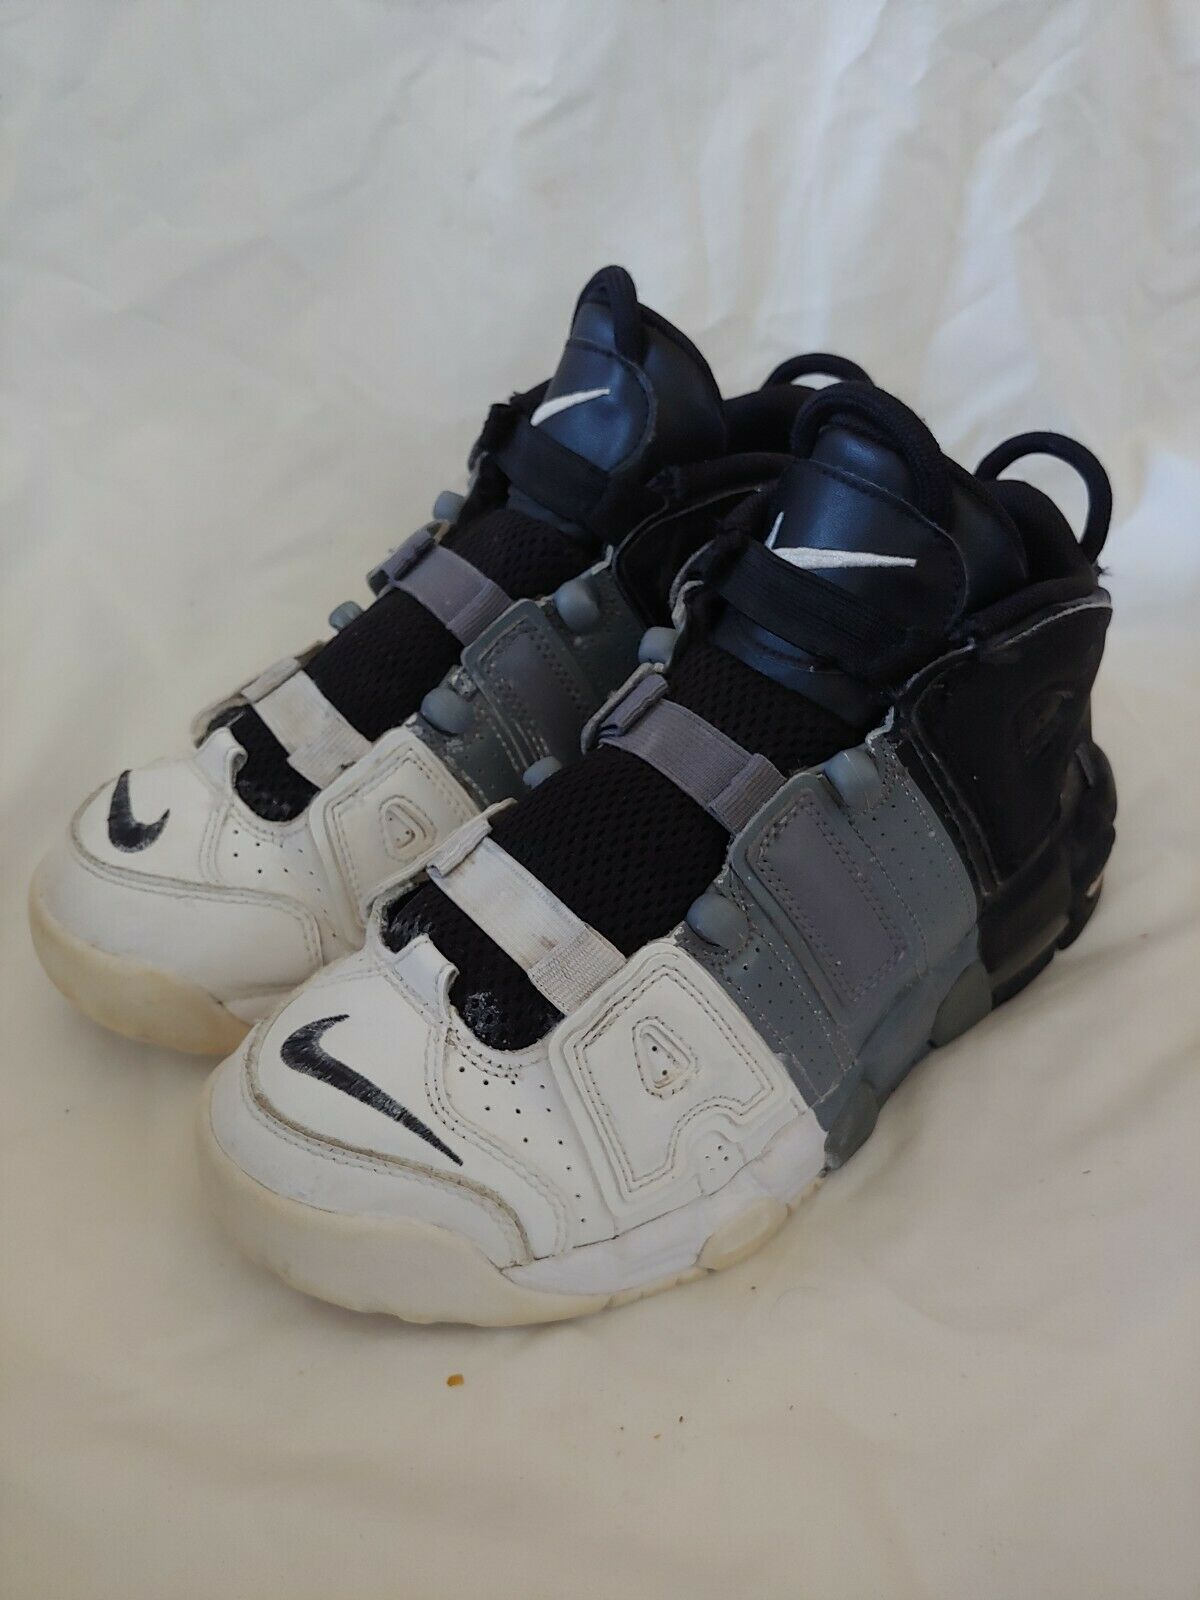 público Hierbas trompeta  Nike Air More Uptempo Big Kids 415082-005 Black Cool Grey White Shoes Size  4.5 for sale online | eBay